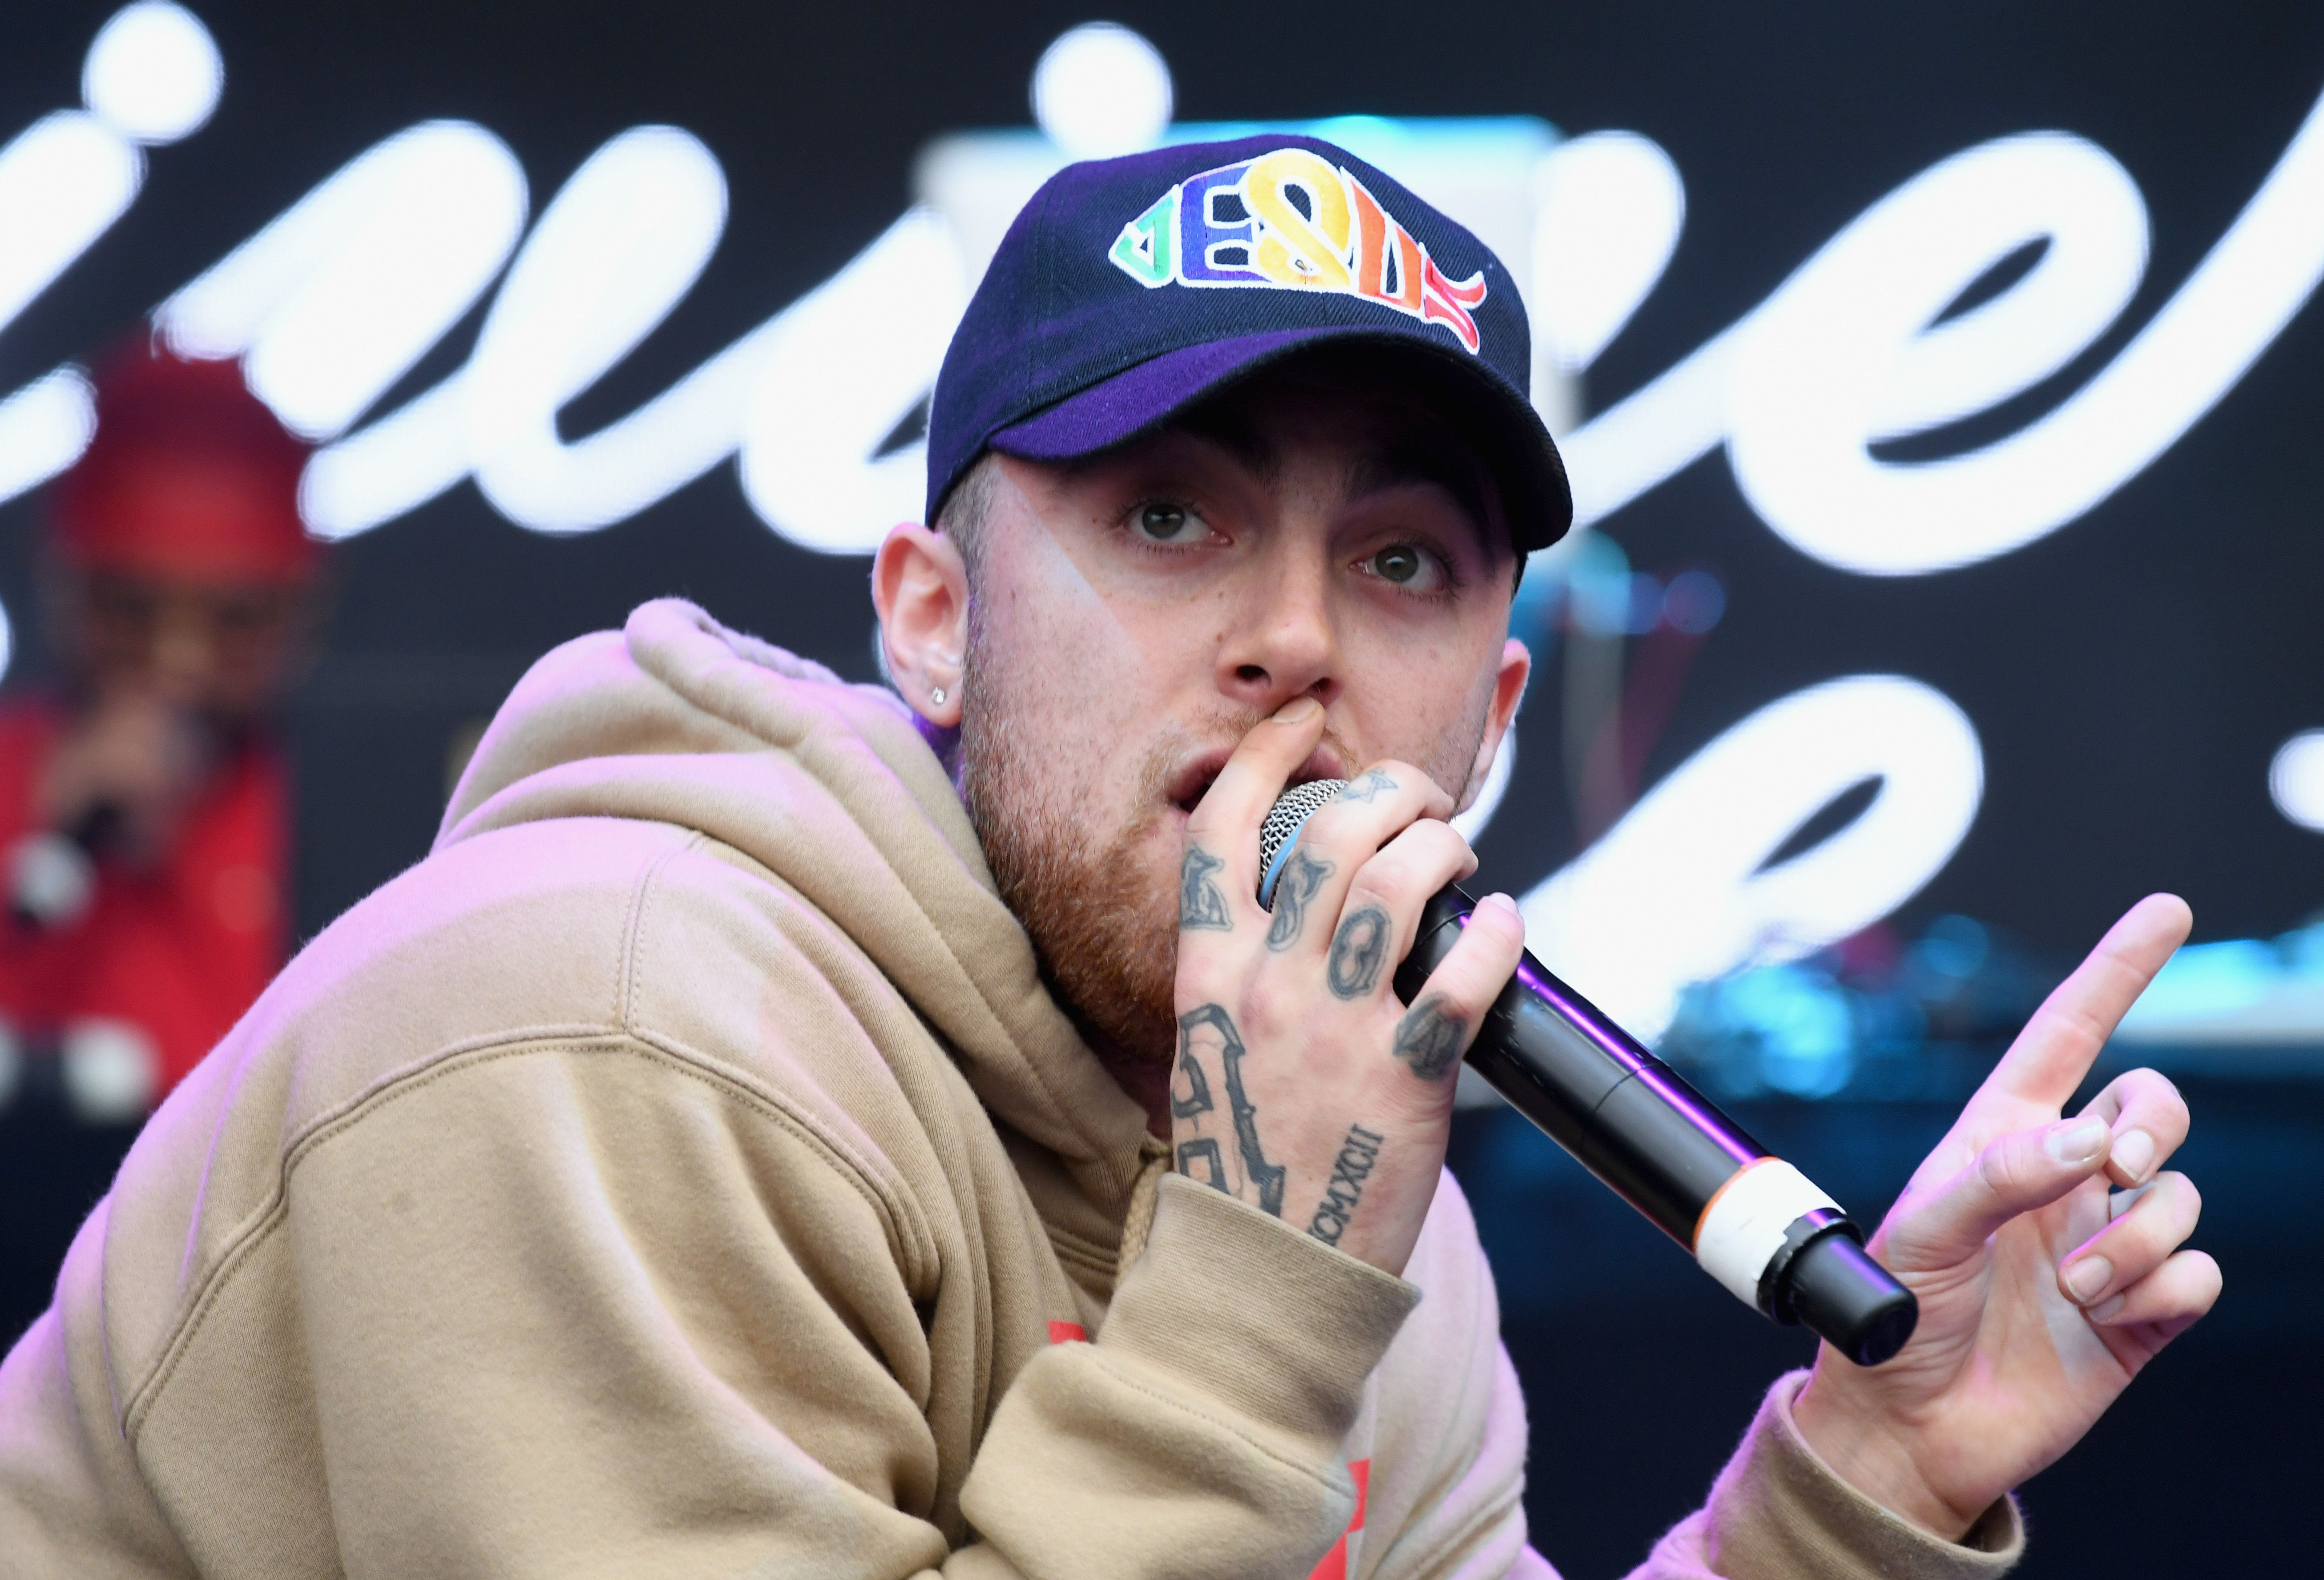 QUEENS, NY - OCTOBER 02:  Rapper Mac Miller performs onstage during The Meadows Music & Arts Festival Day 2 on October 2, 2016 in Queens, New York.  (Photo by Jeff Kravitz/Getty Images for The Meadows)